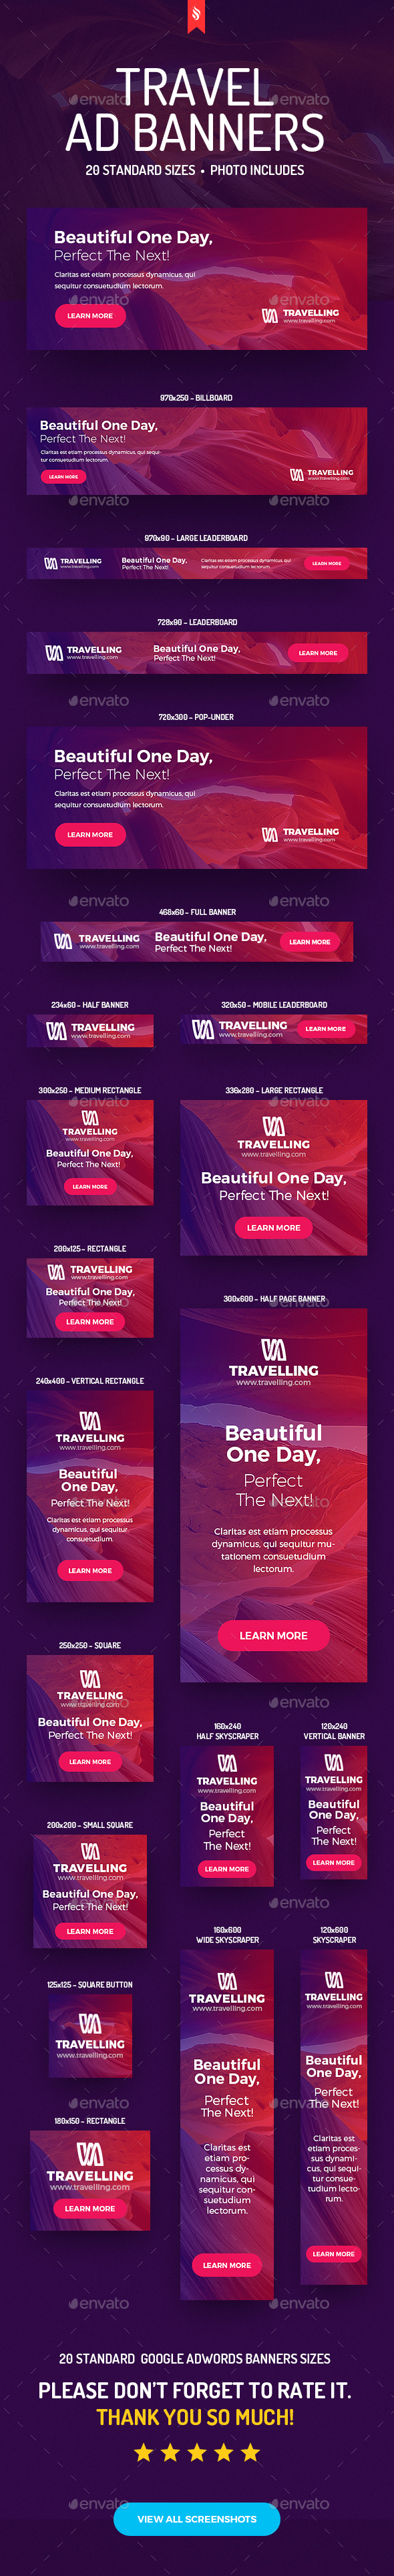 Travelling - Travel Ad Banners - Banners & Ads Web Elements